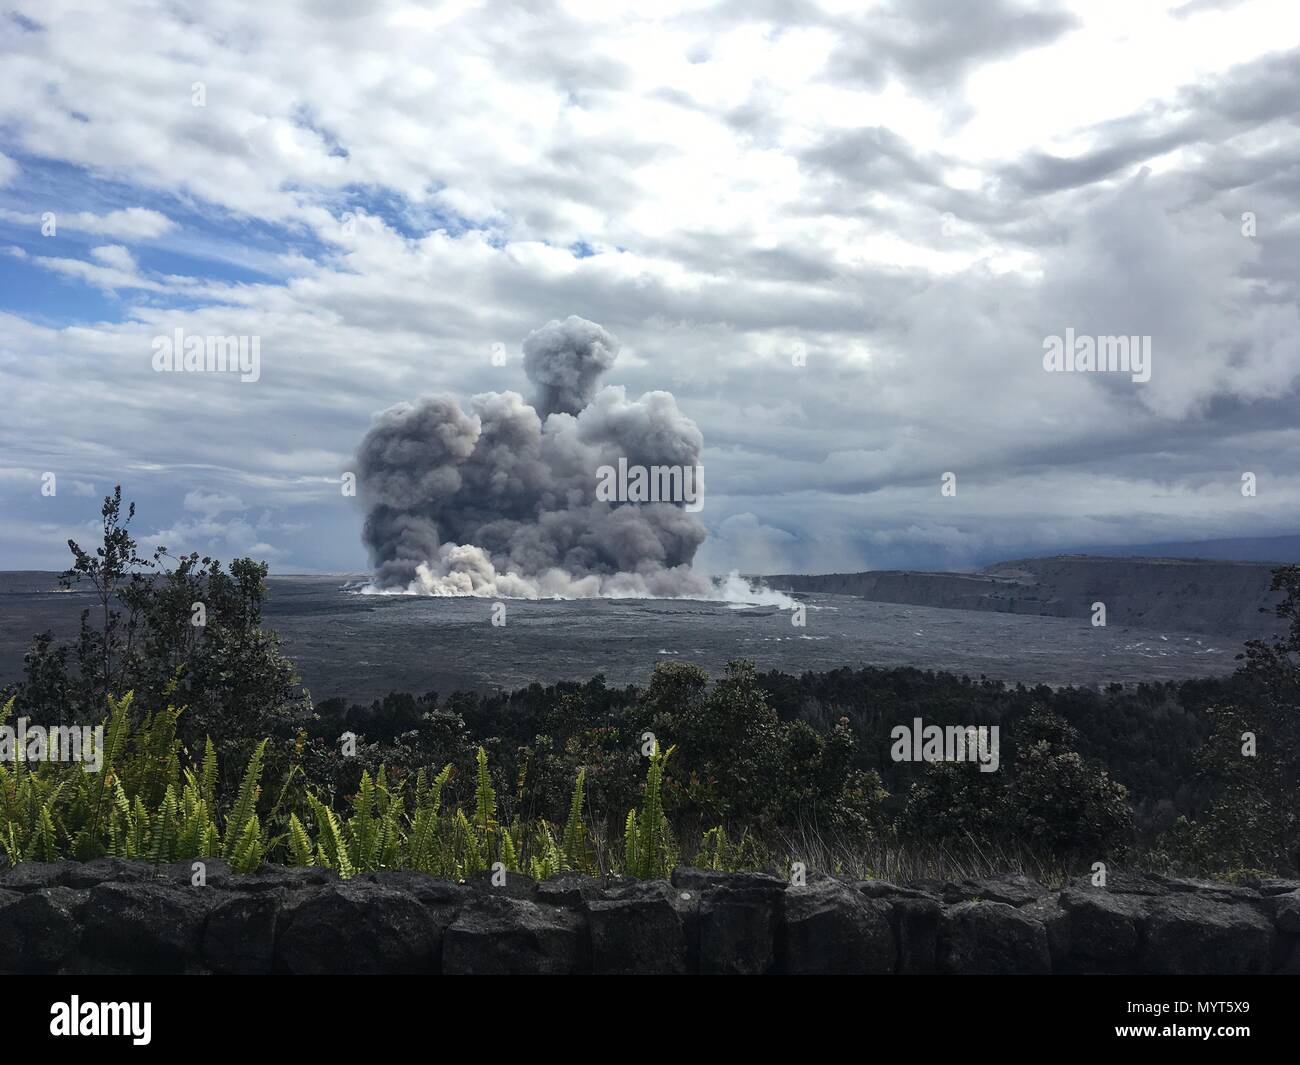 Hawaii, USA. 6th June, 2018. A massive ash cloud shoots into the air from the eruption of the Kilauea volcano June 6, 2018 in Hawaii. The recent eruption continues destroying homes, forcing evacuations and spewing lava and poison gas on the Big Island of Hawaii. Credit: Planetpix/Alamy Live News Stock Photo